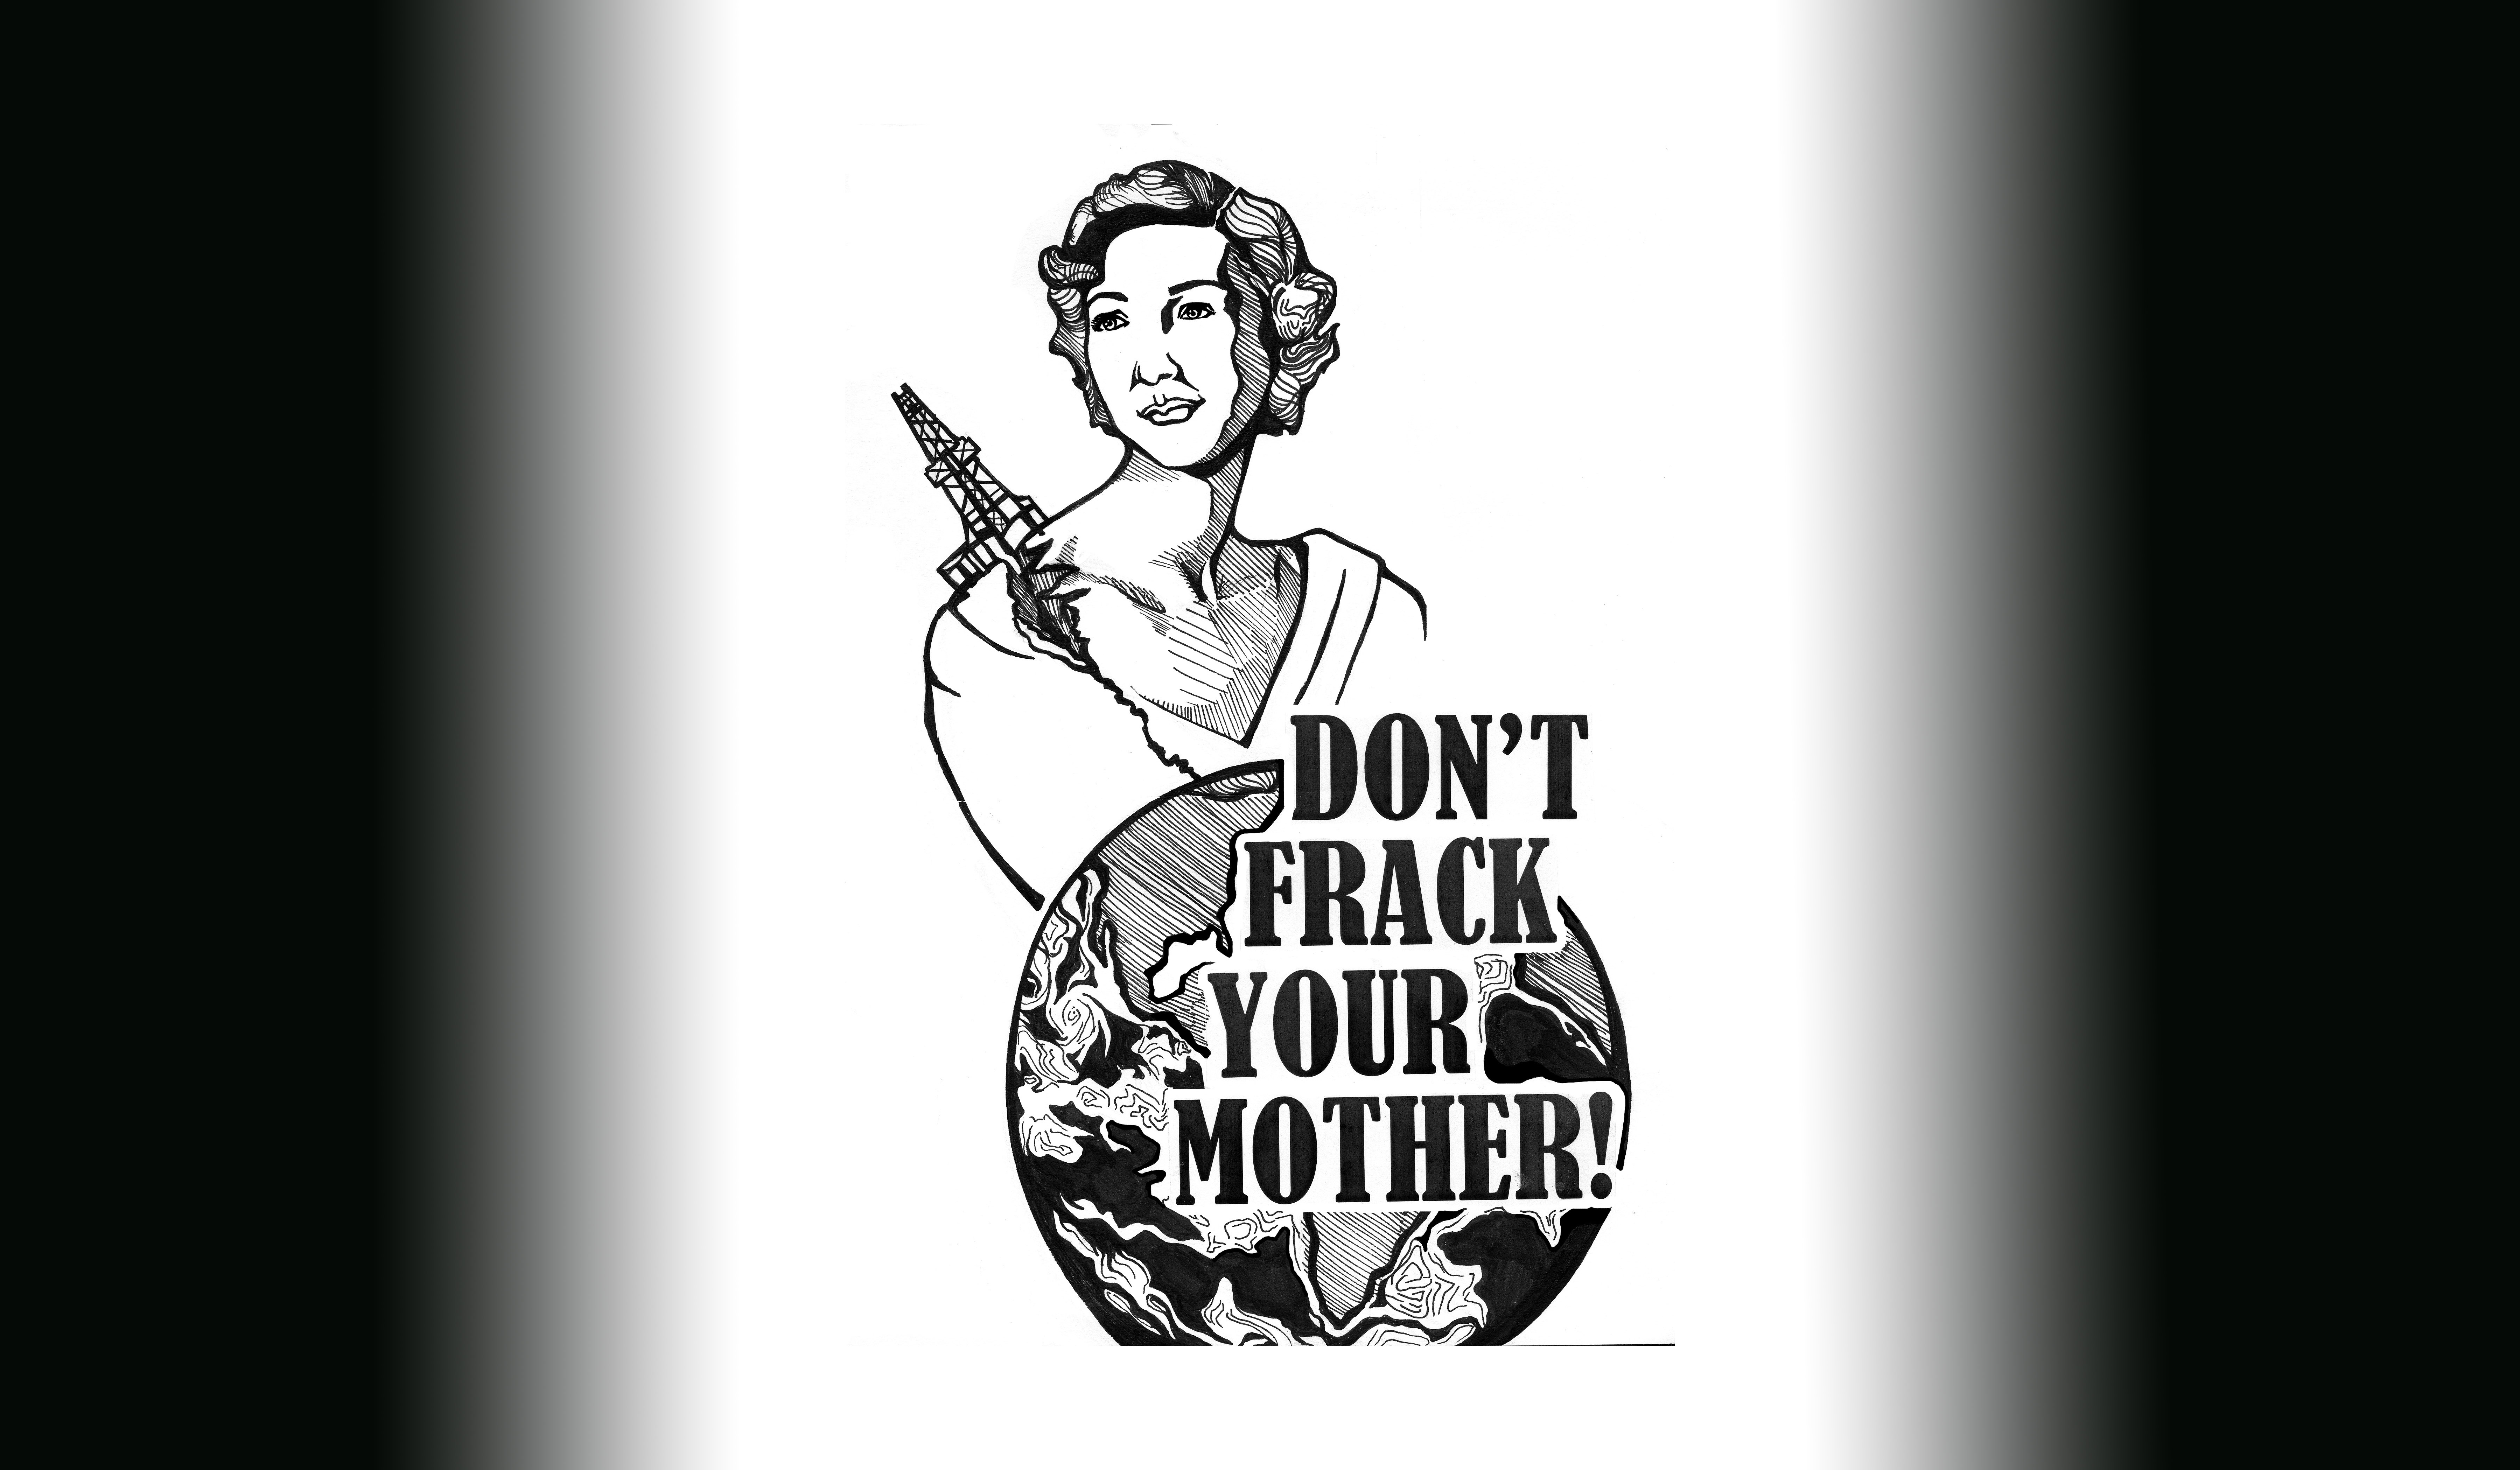 Don't Frack Your Mother - M Sayles FEATURED